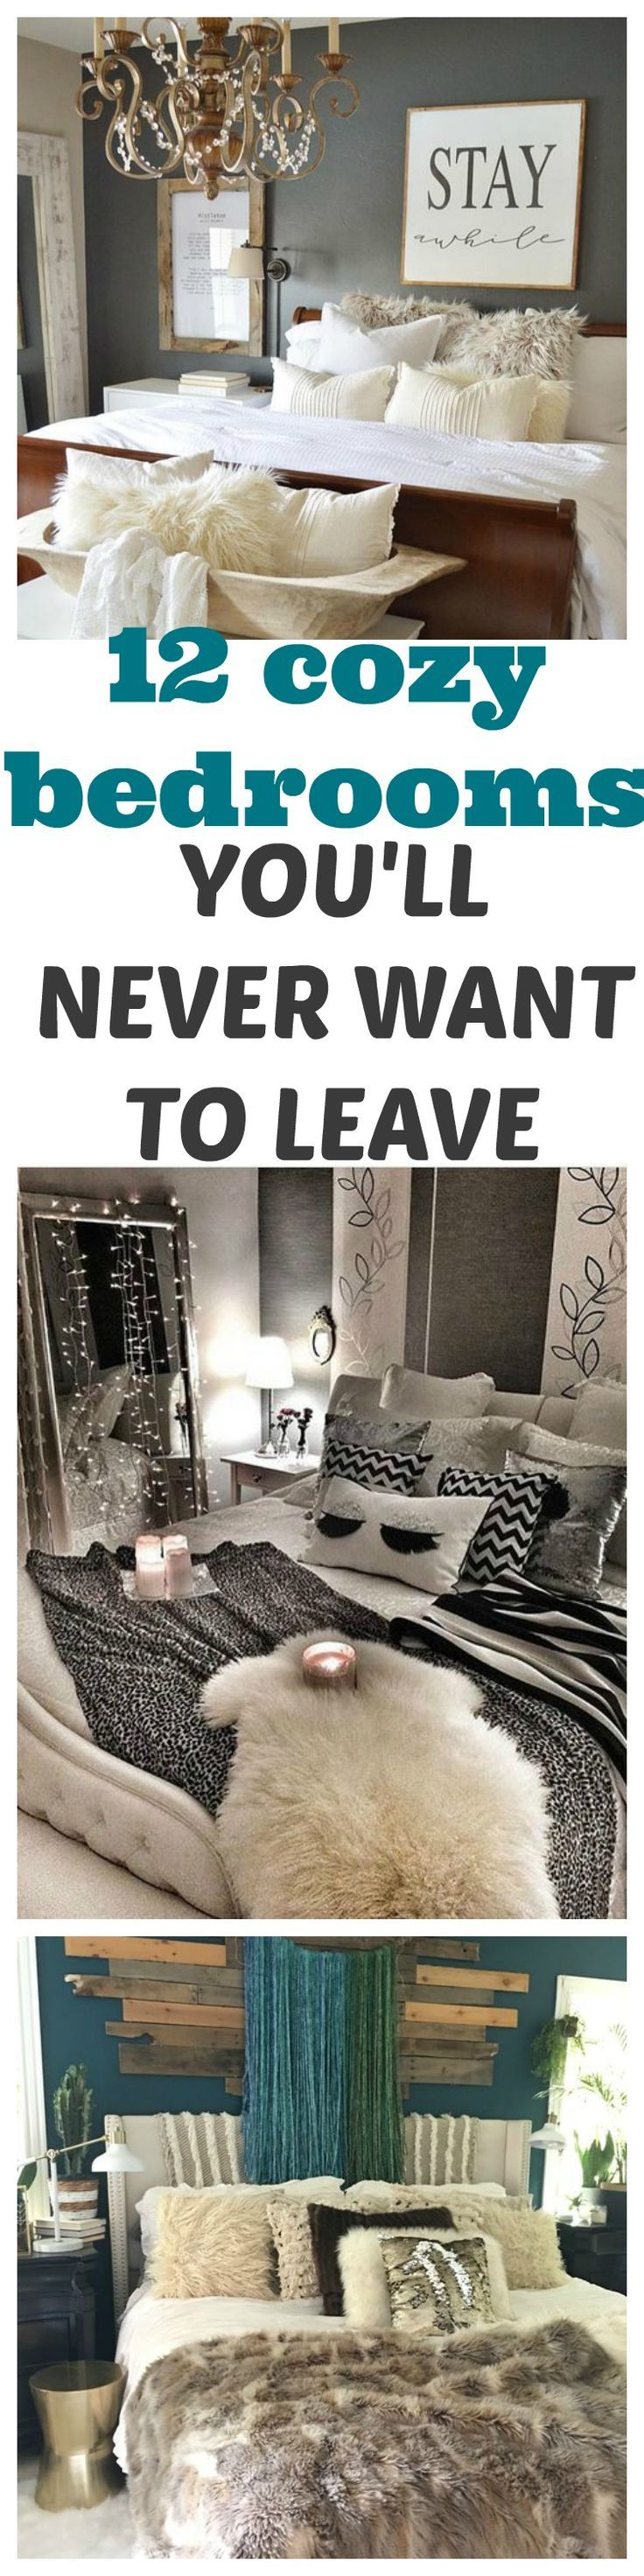 12 cozy bedroom ideas for small bedrooms, apartments, dorms and master bedrooms decor ideas. Decorating with blankets, lights, faux fur, pillows, hammock chairs and more. #decor #decorating#fauxfur #interiors